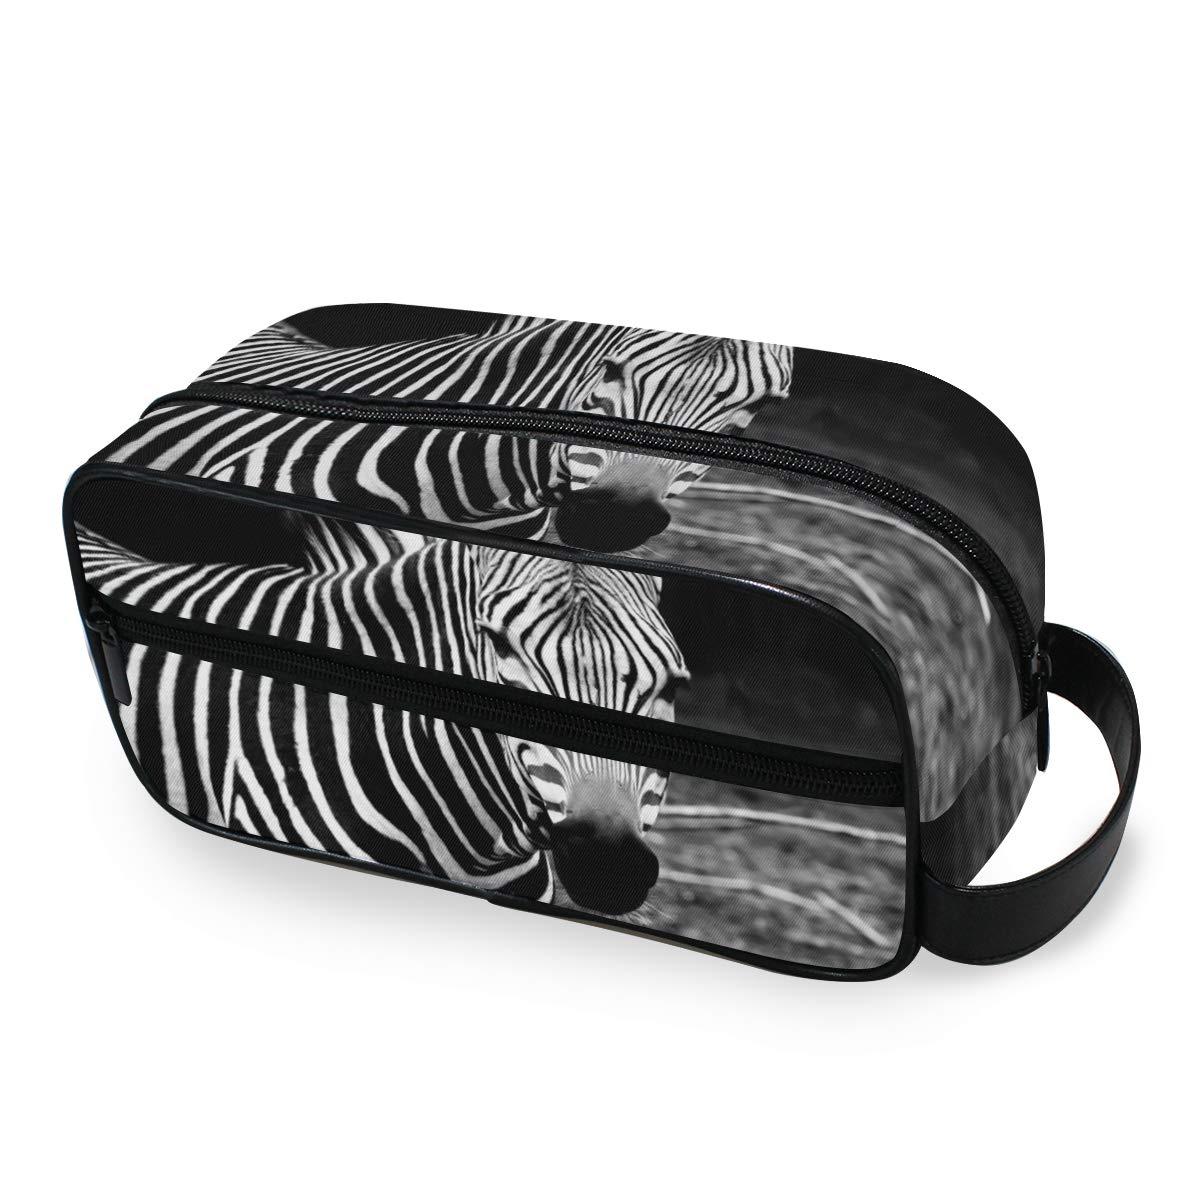 JOYPRINT Portable Travel Makeup Bag, African Animal Zebra Cosmetic Bag Toiletry Bag Pouch with Zipper Multifunction Cosmetic Case for Women Girls